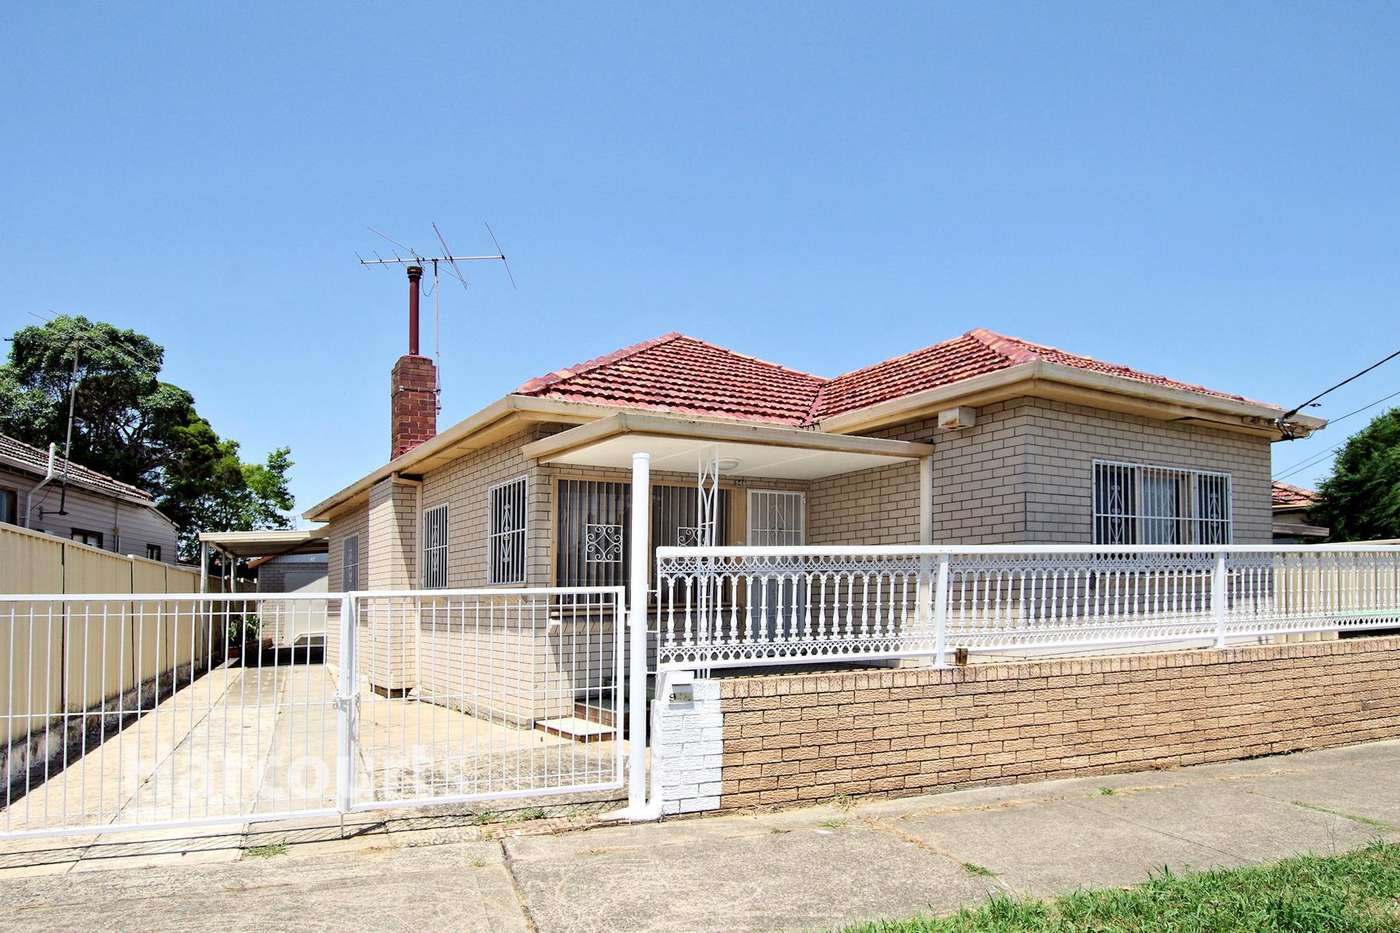 Main view of Homely house listing, 946 Punchbowl Road, Punchbowl, NSW 2196